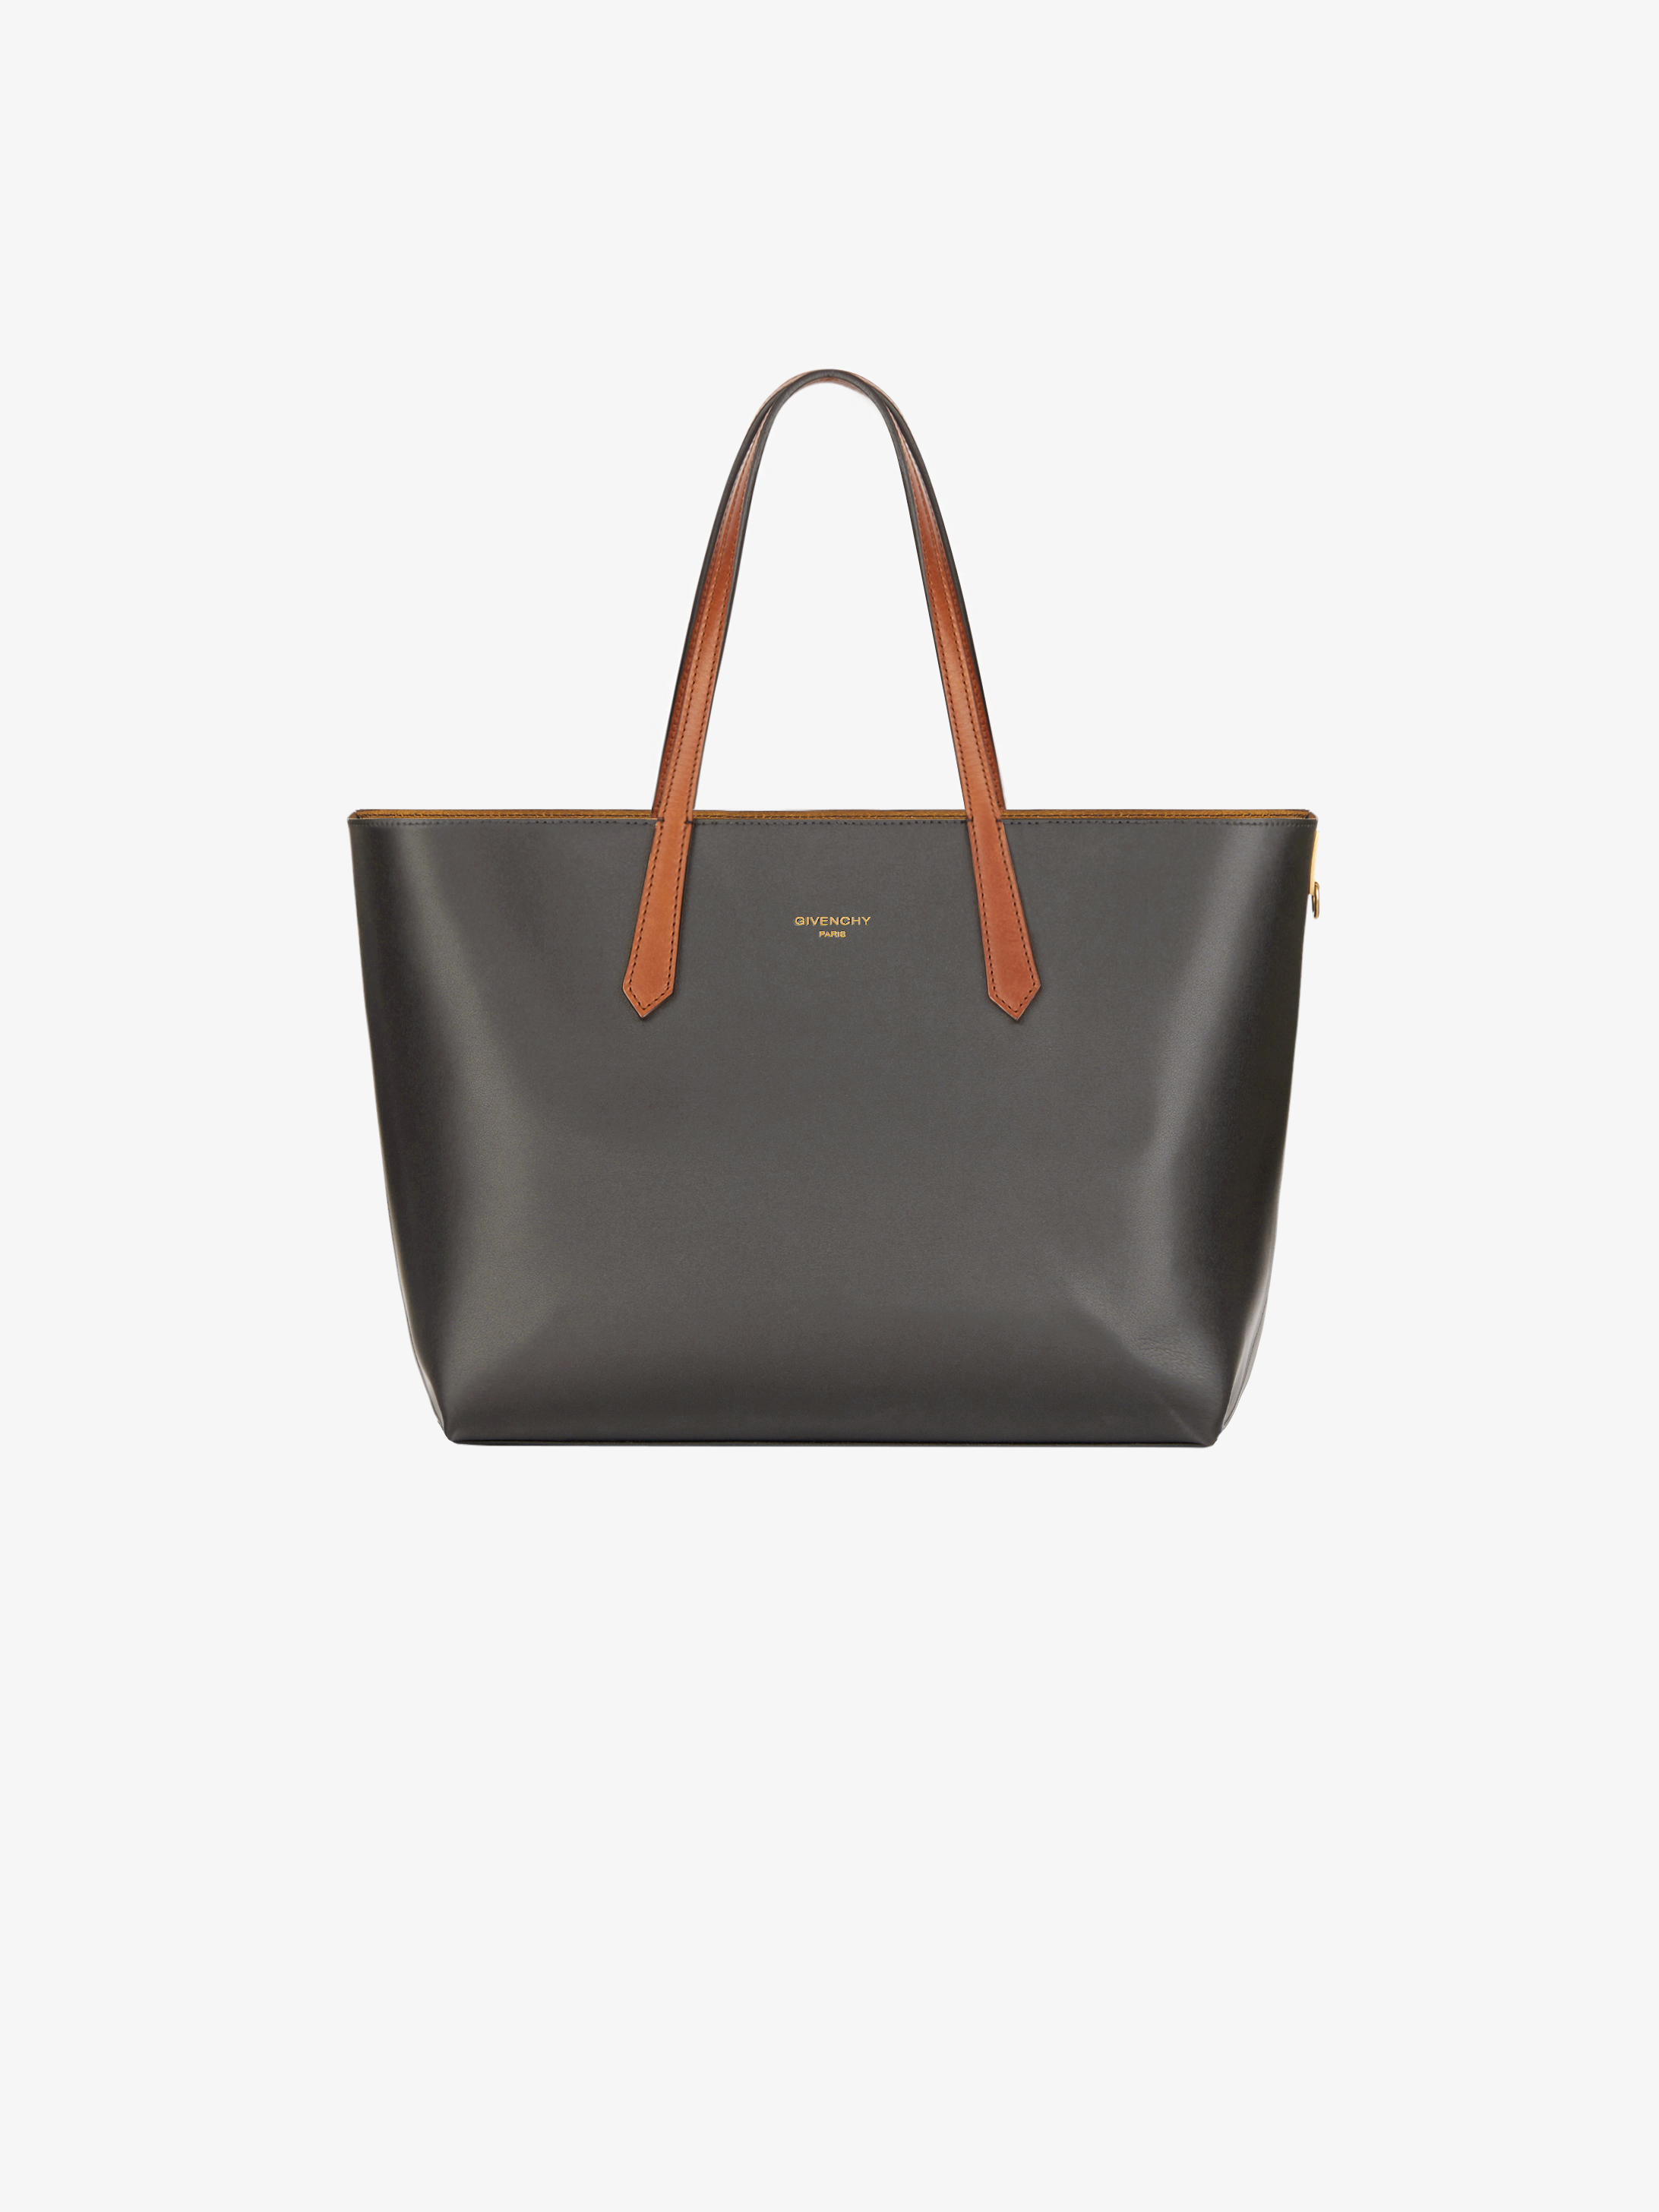 ded4bfe3f9ff Tote bag in smooth leather